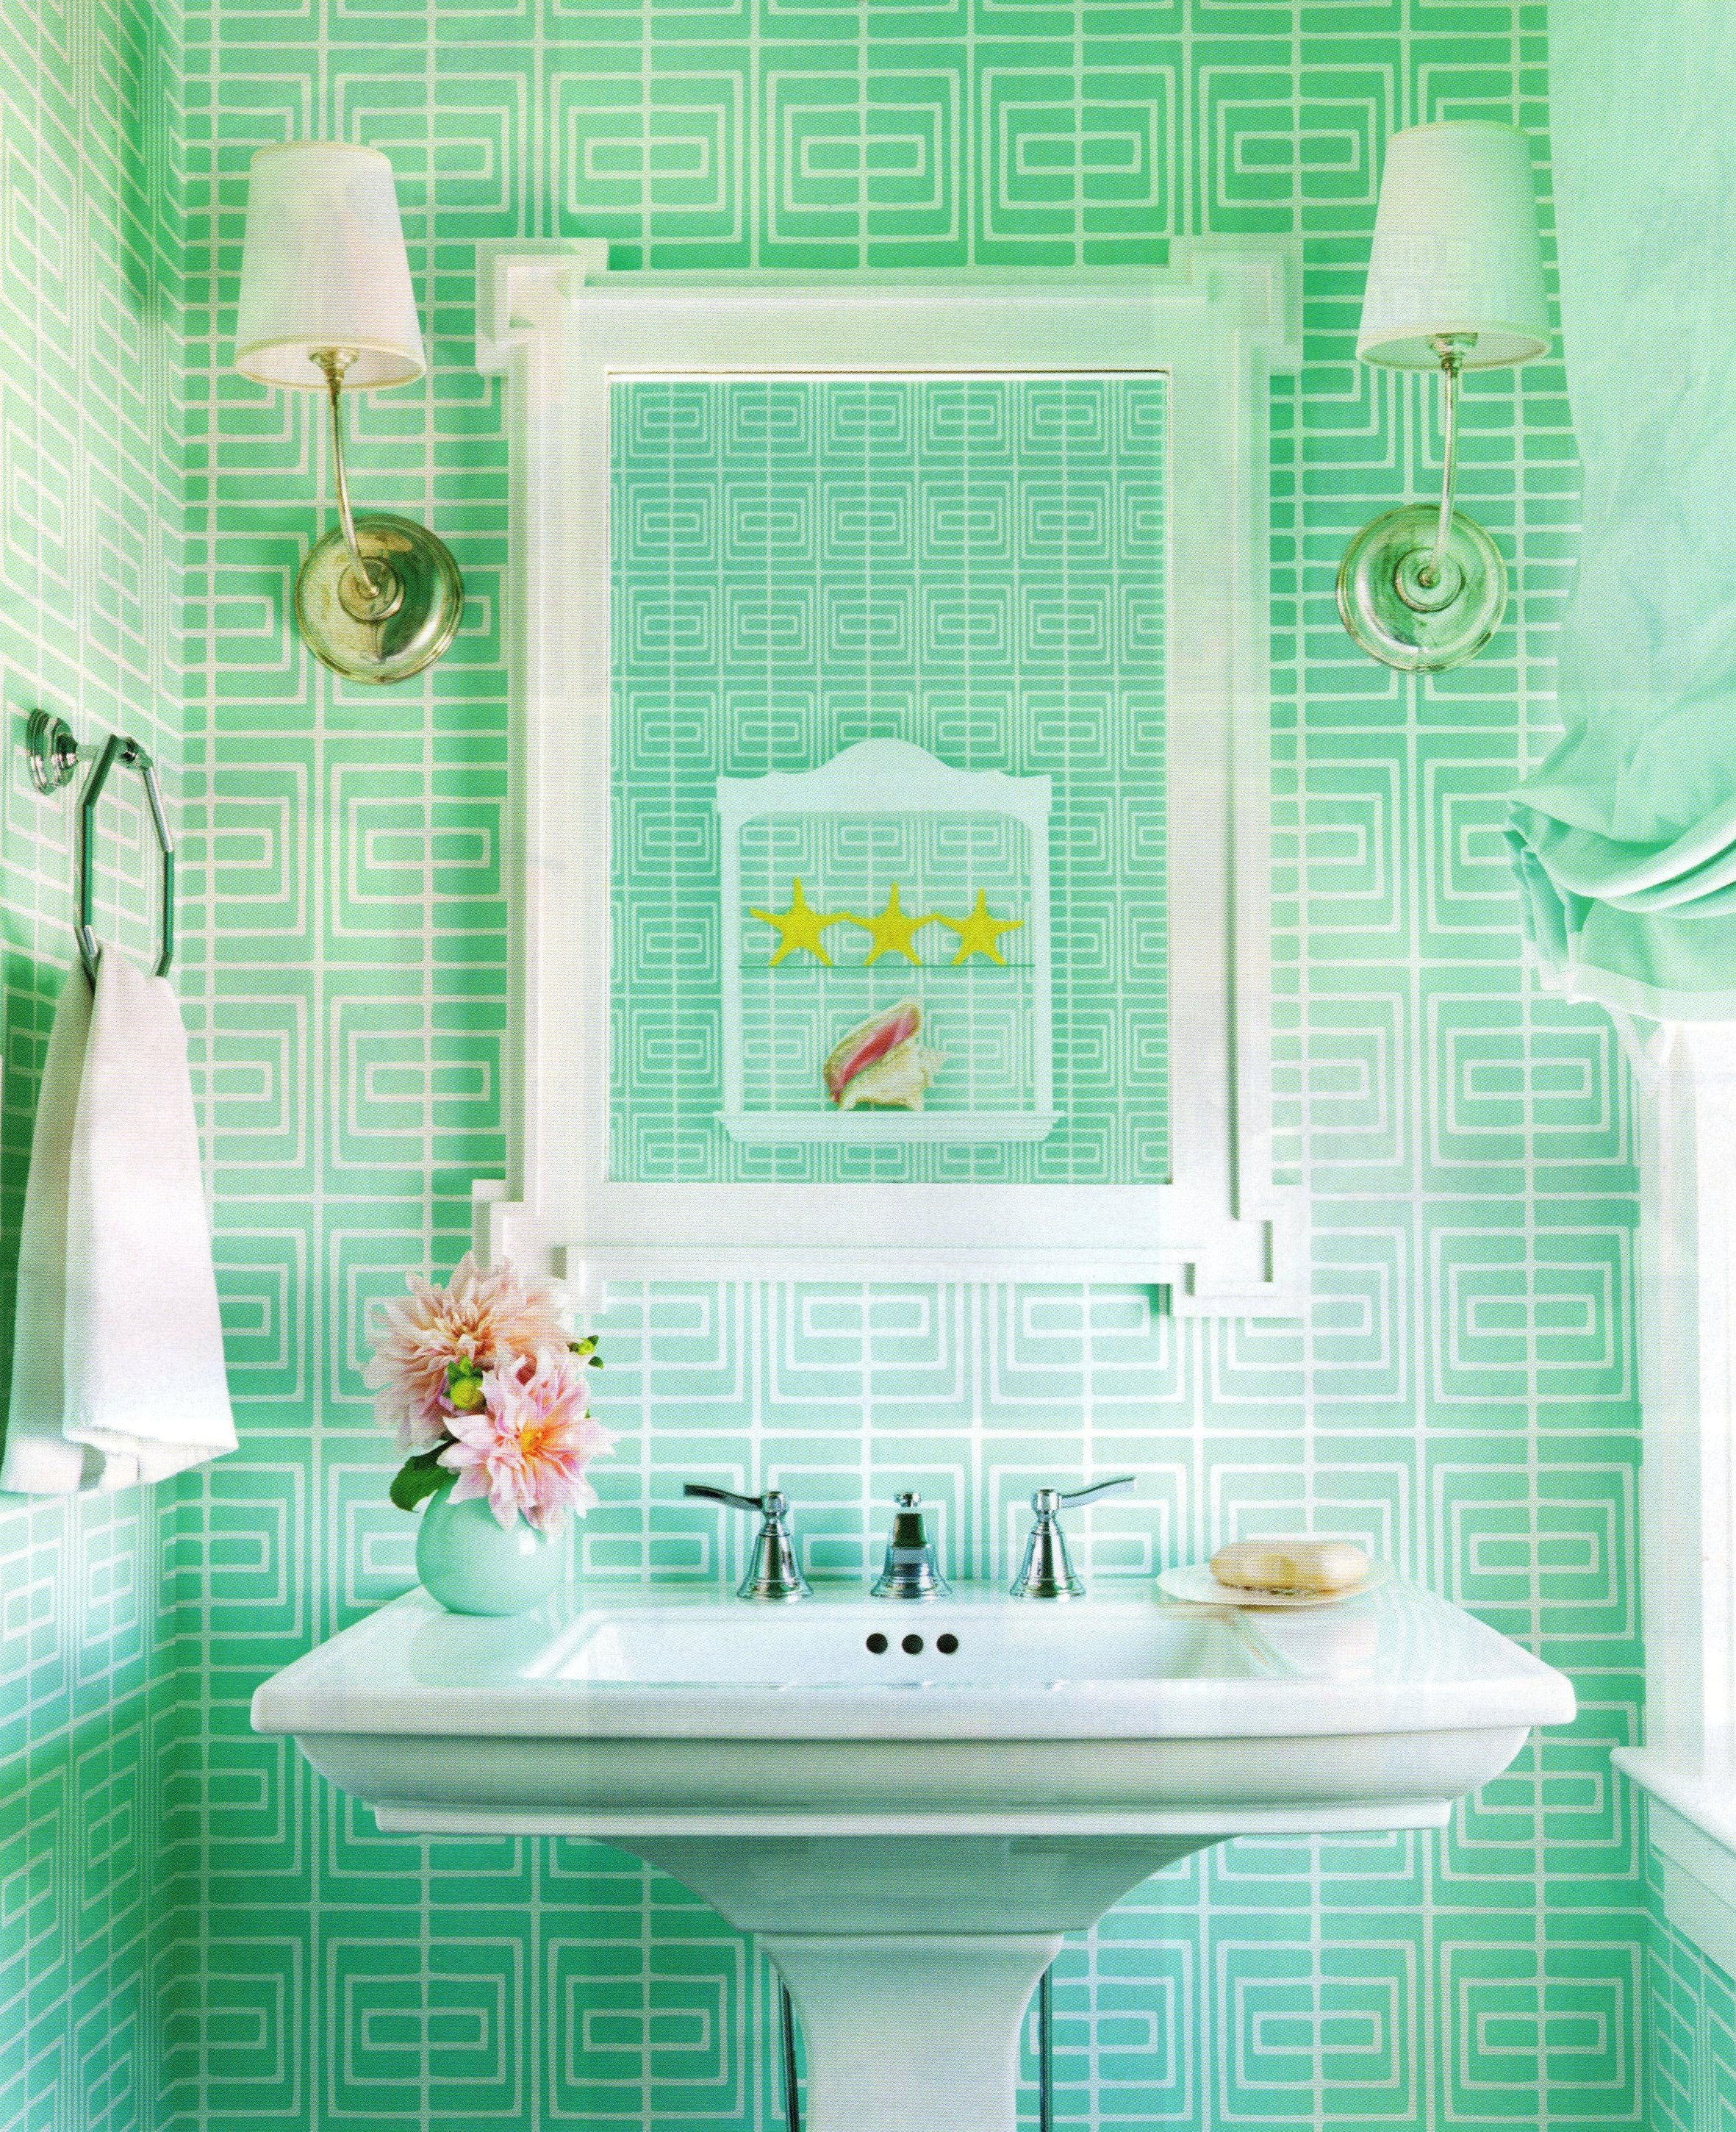 decoration-bathroom-beautiful-very-small-teal-bathroom-design-with-white-porcelain-vintage-pedestal-sink-added-wall-shade-lights-fixtures-and-towel-bar-decors-elegant-teal-bathroom-color-styles-and